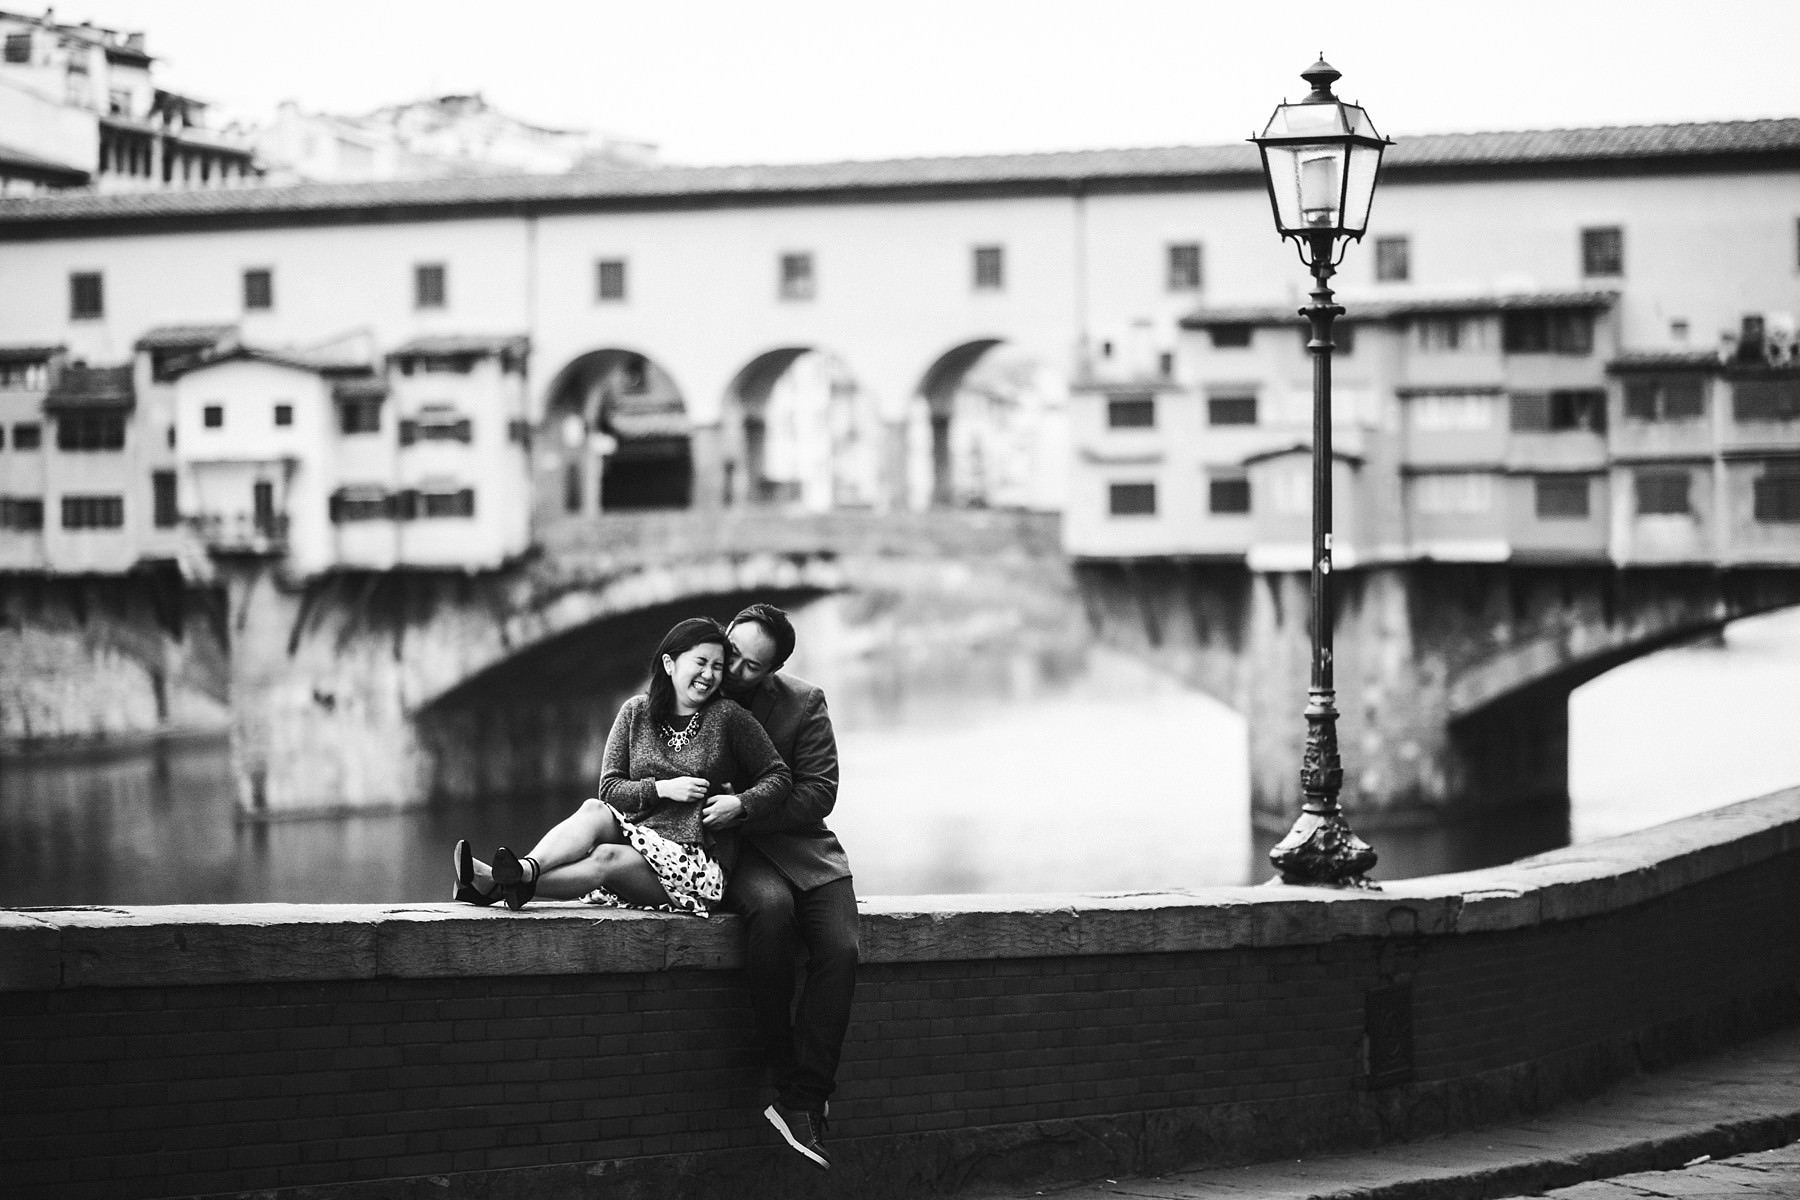 Enjoy your special vacation with a gorgeous professional photo session. Sunrise with no crowds engagement pre-wedding photo shoot in Florence at Ponte Vecchio